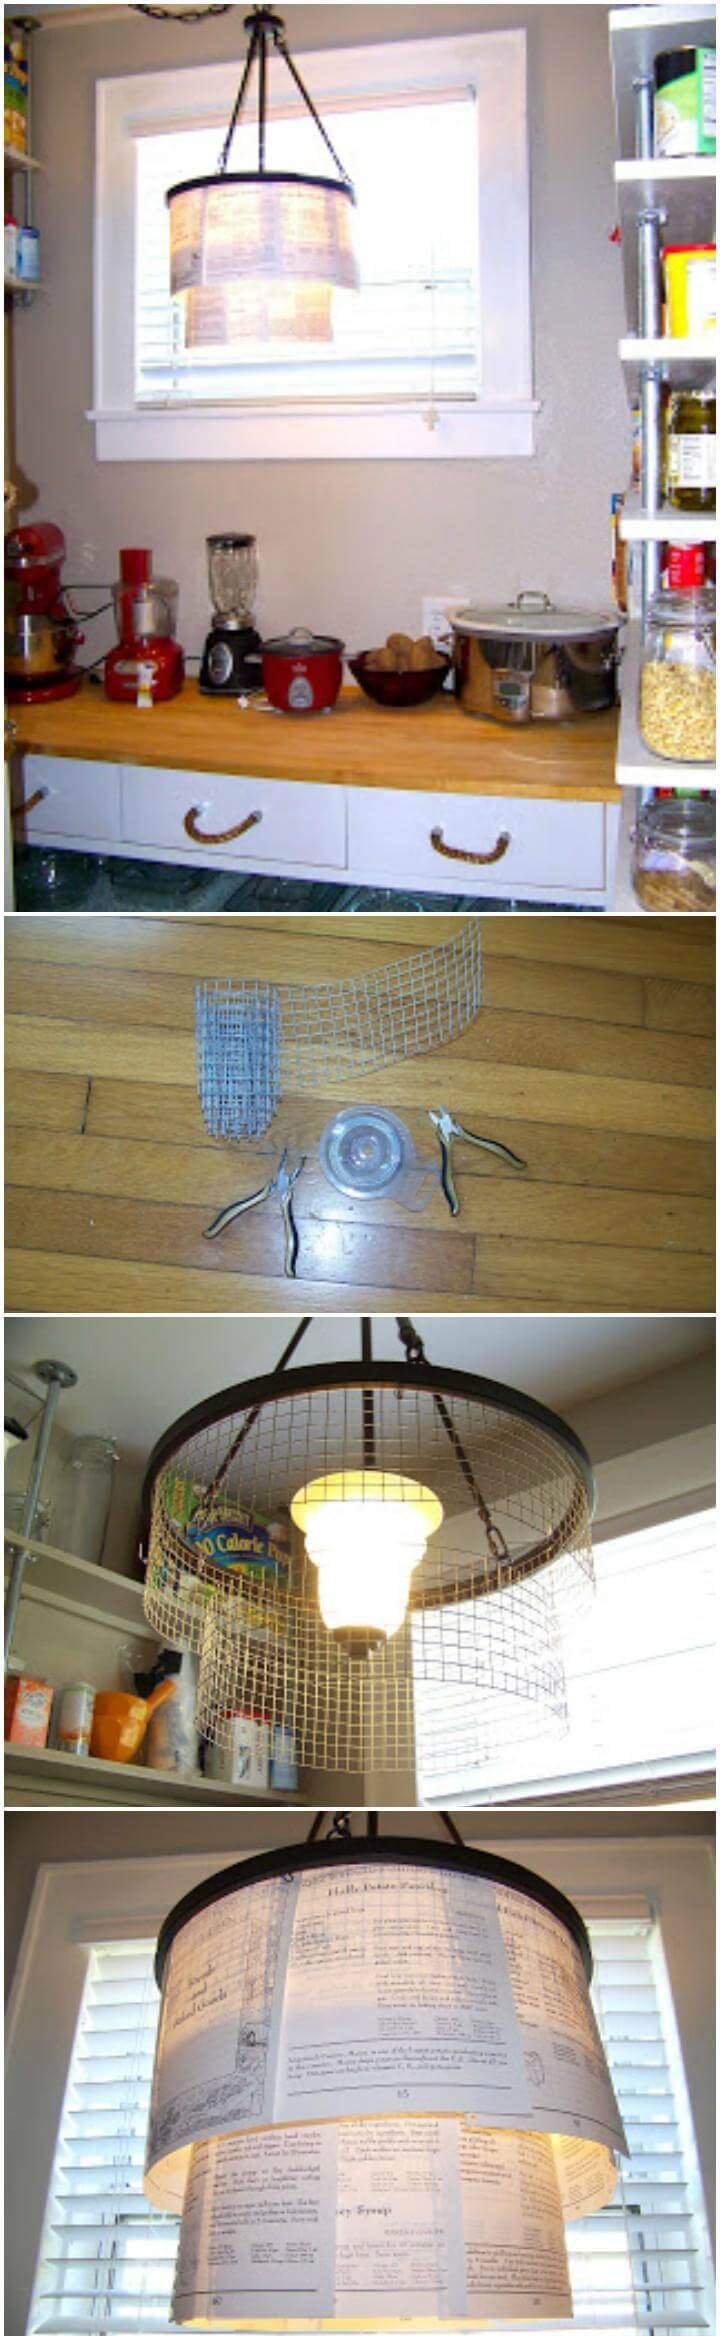 low-cost panty pendant light